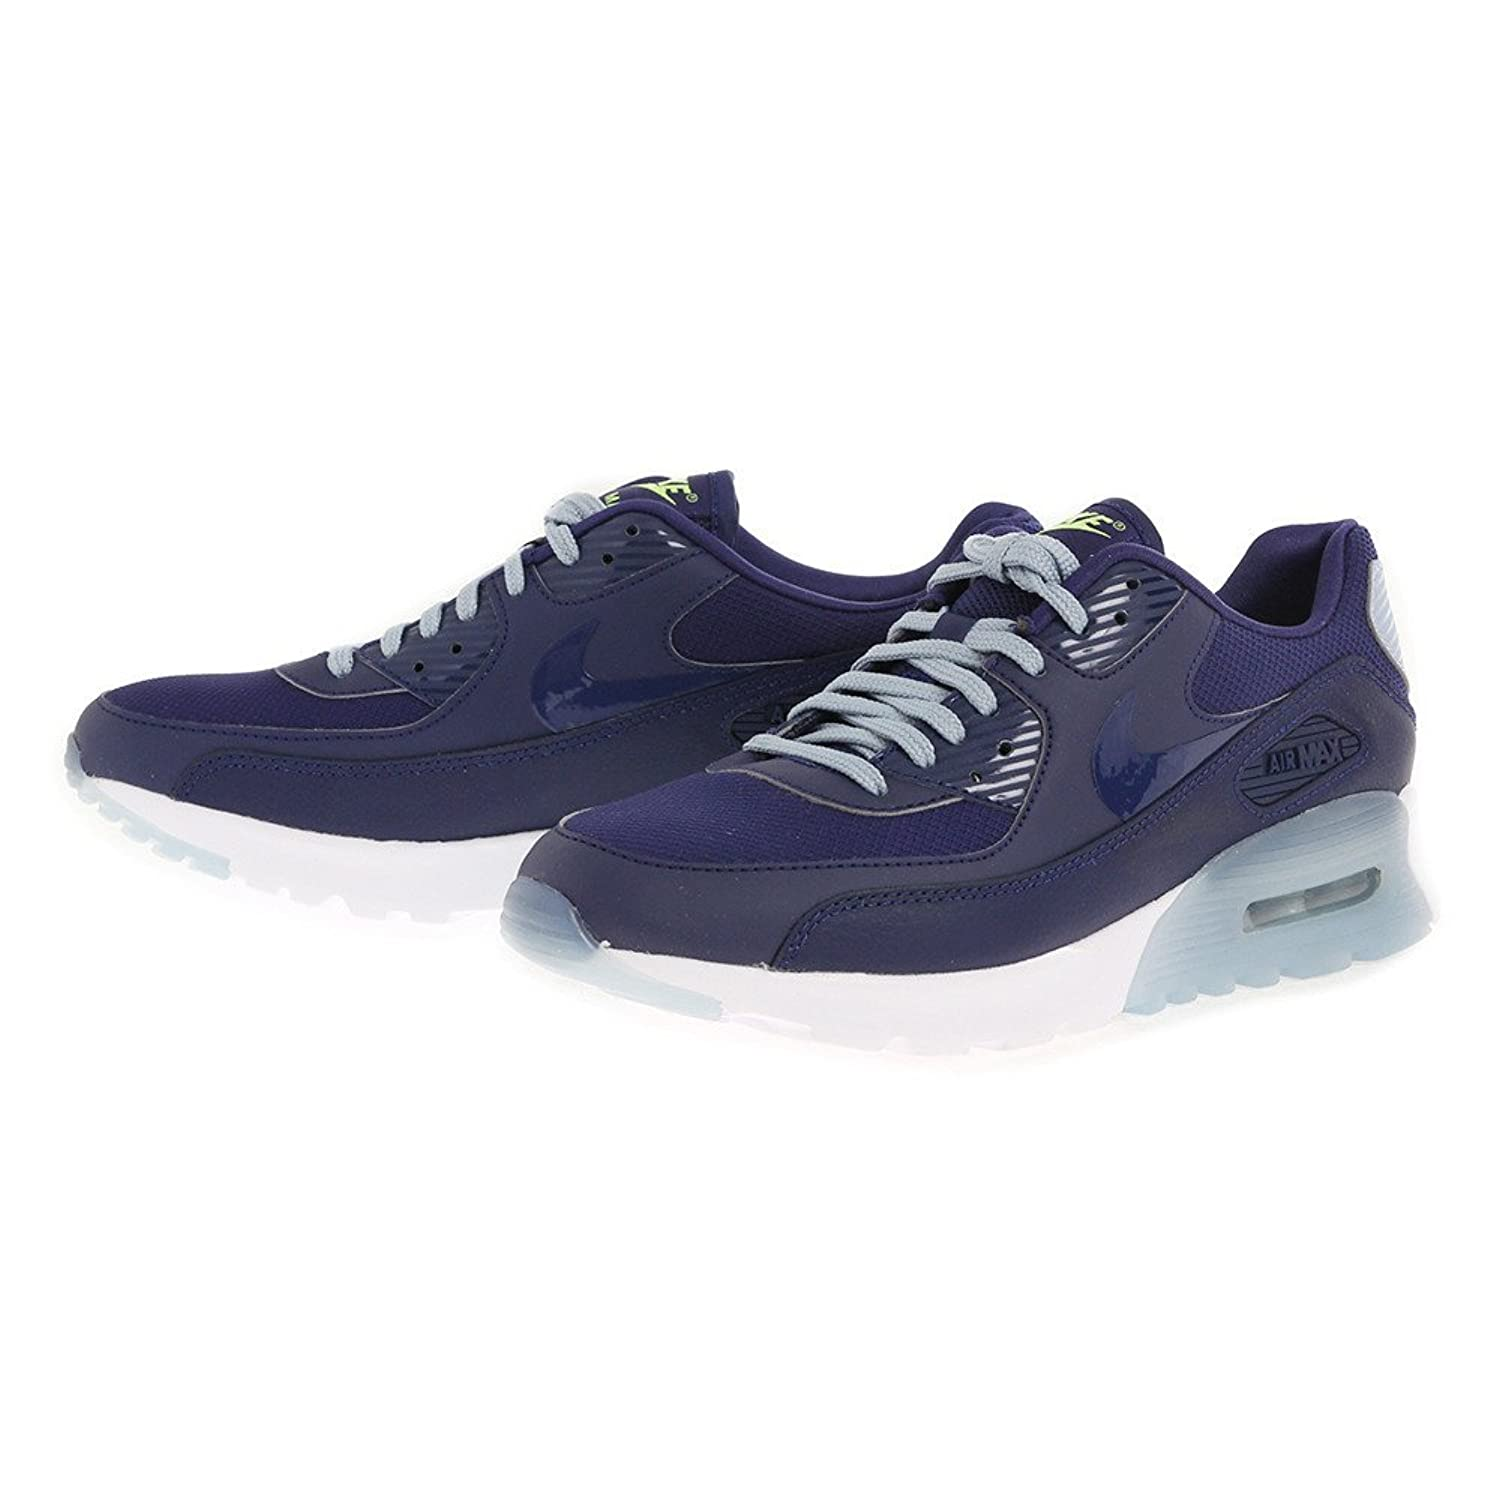 finest selection 9412d 9b597 Nike Women's Air Max 90 Ultra Essential Running Shoe low ...